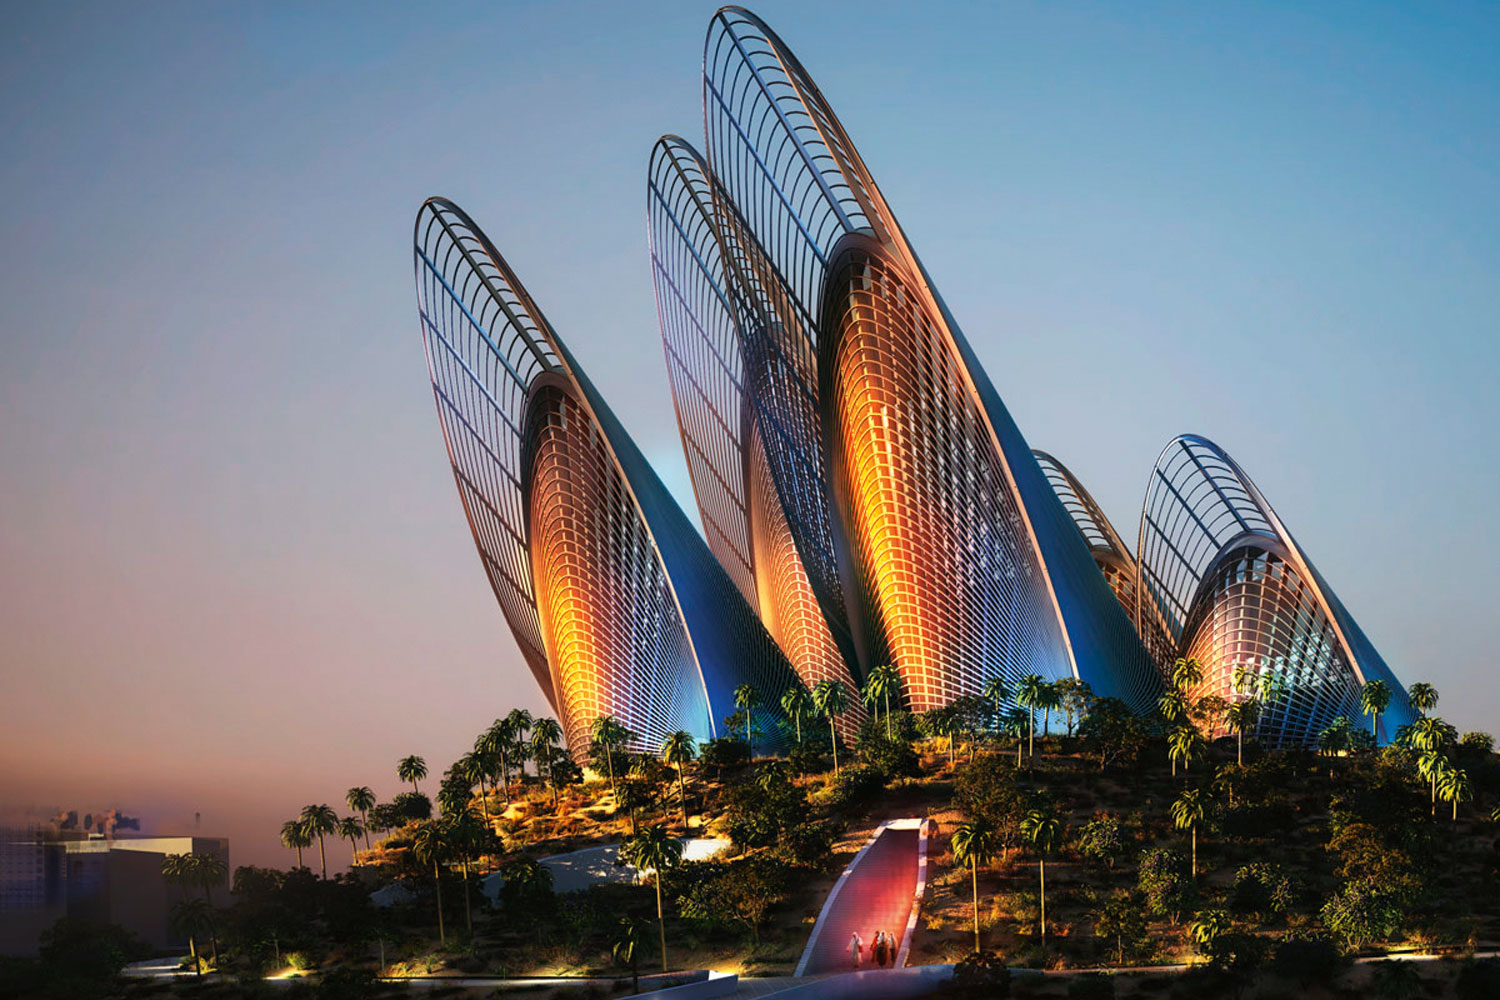 Saadiyat Island The fusion of culture, art and architecture